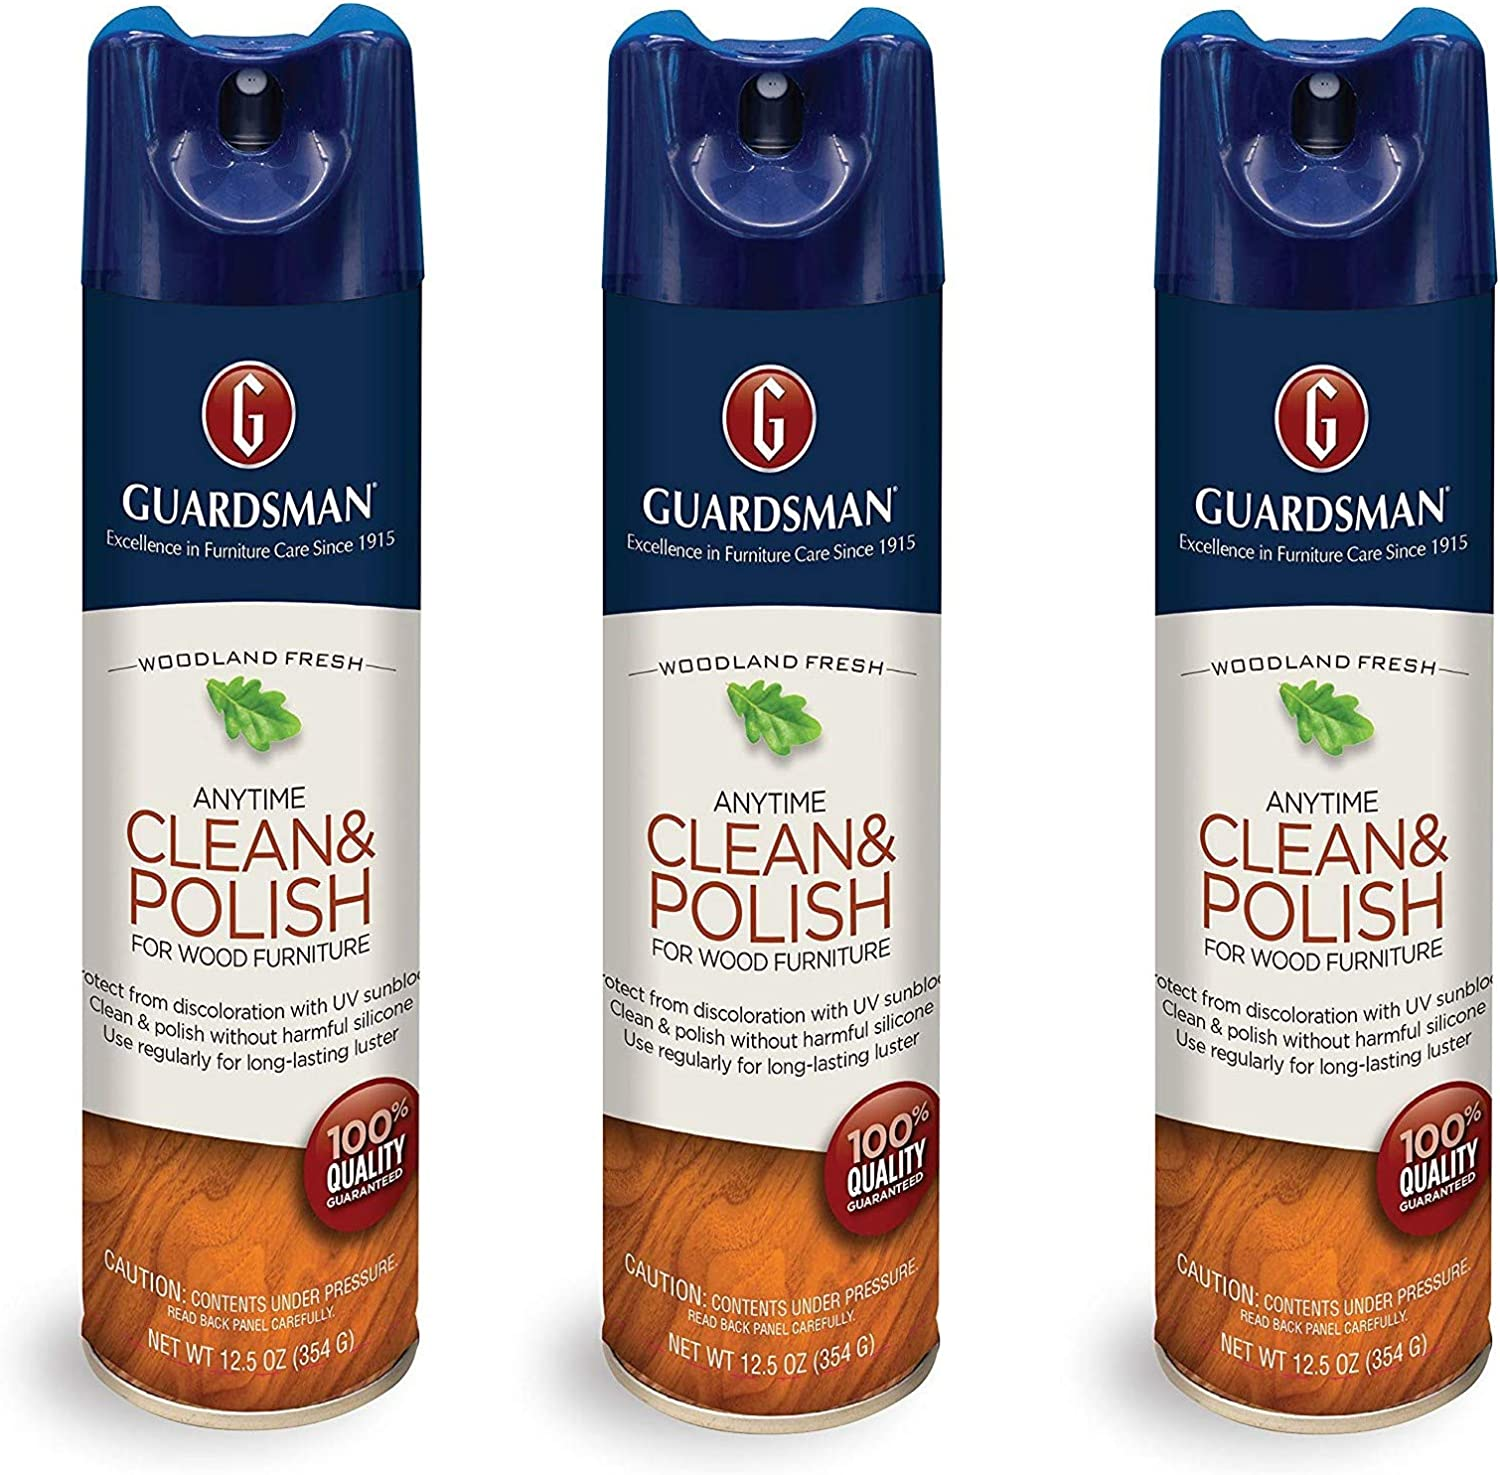 Guardsman Clean & Polish For Wood Furniture - Woodland Fresh - 12.5 oz - Silicone Free, UV Protection (3)